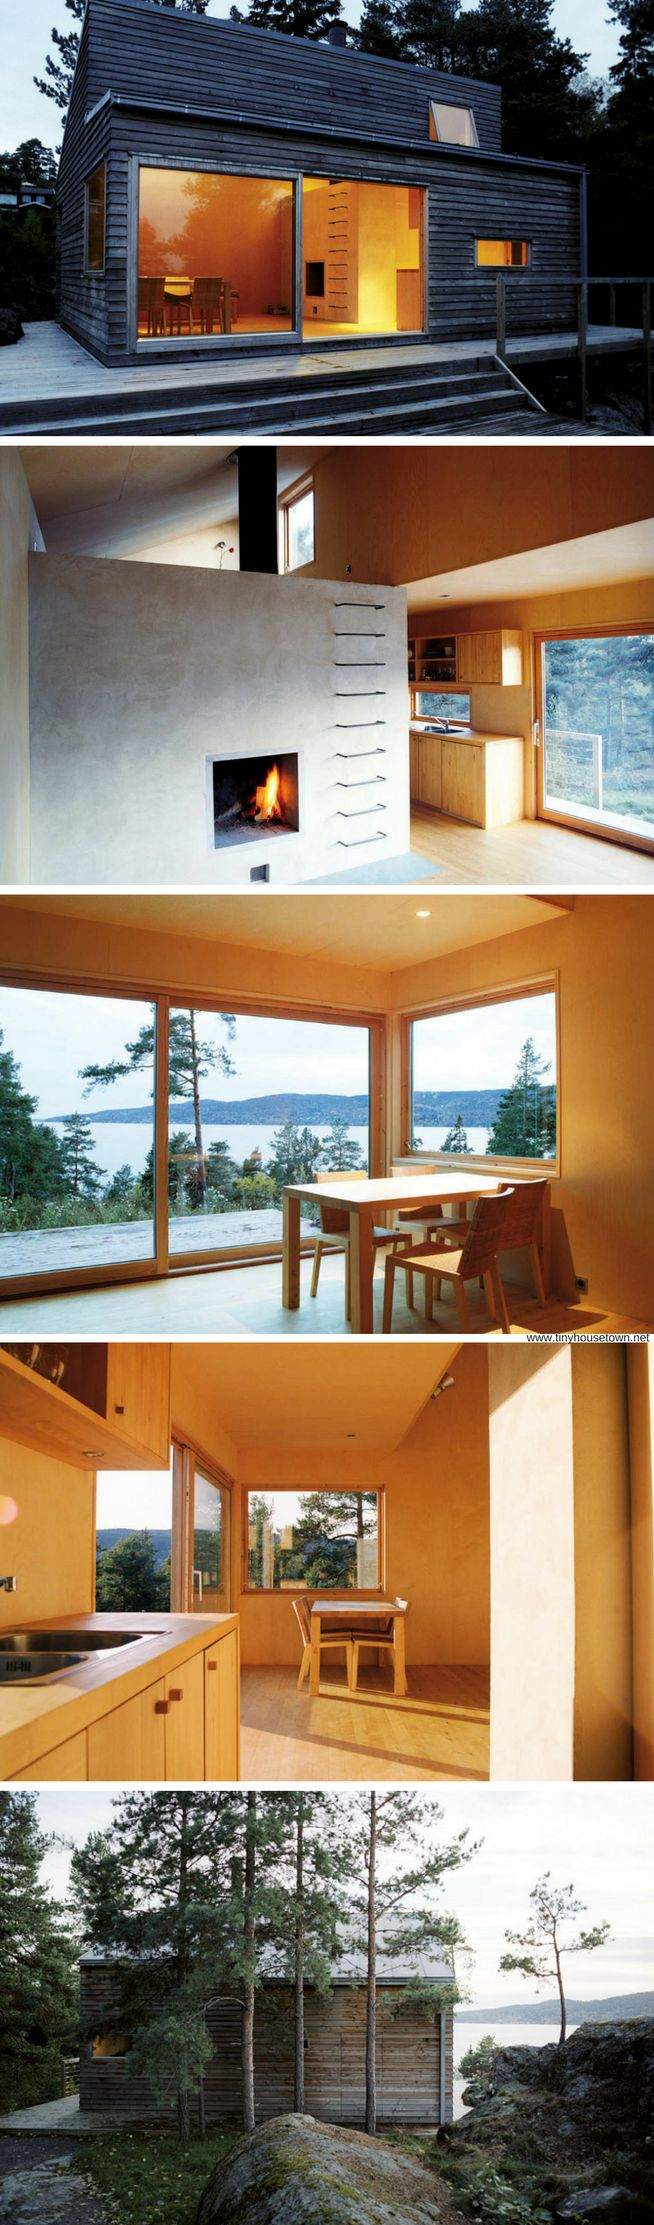 Woody35: a 377 sq ft cabin in Norway